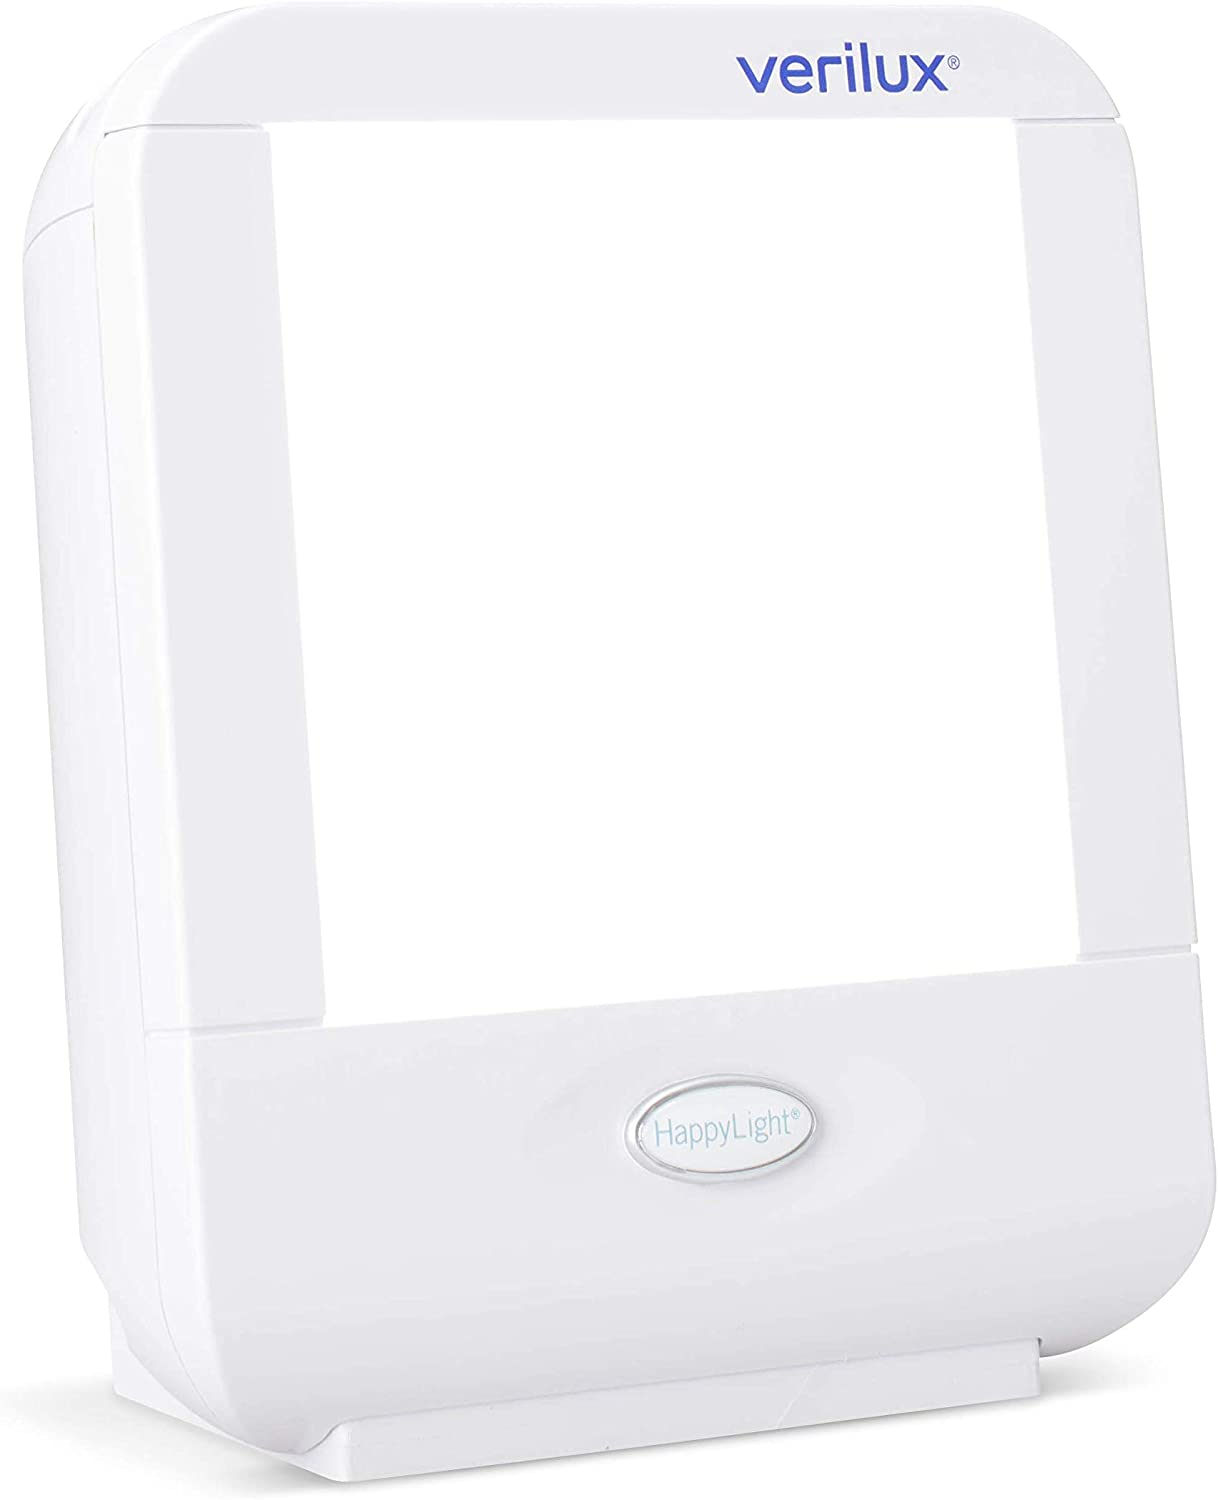 Verilux HappyLight VT10 Compact Personal, Portable Bright White Light 10,000 Lux Therapy Lamp with 20 sq. in. Lens Size: Health & Personal Care